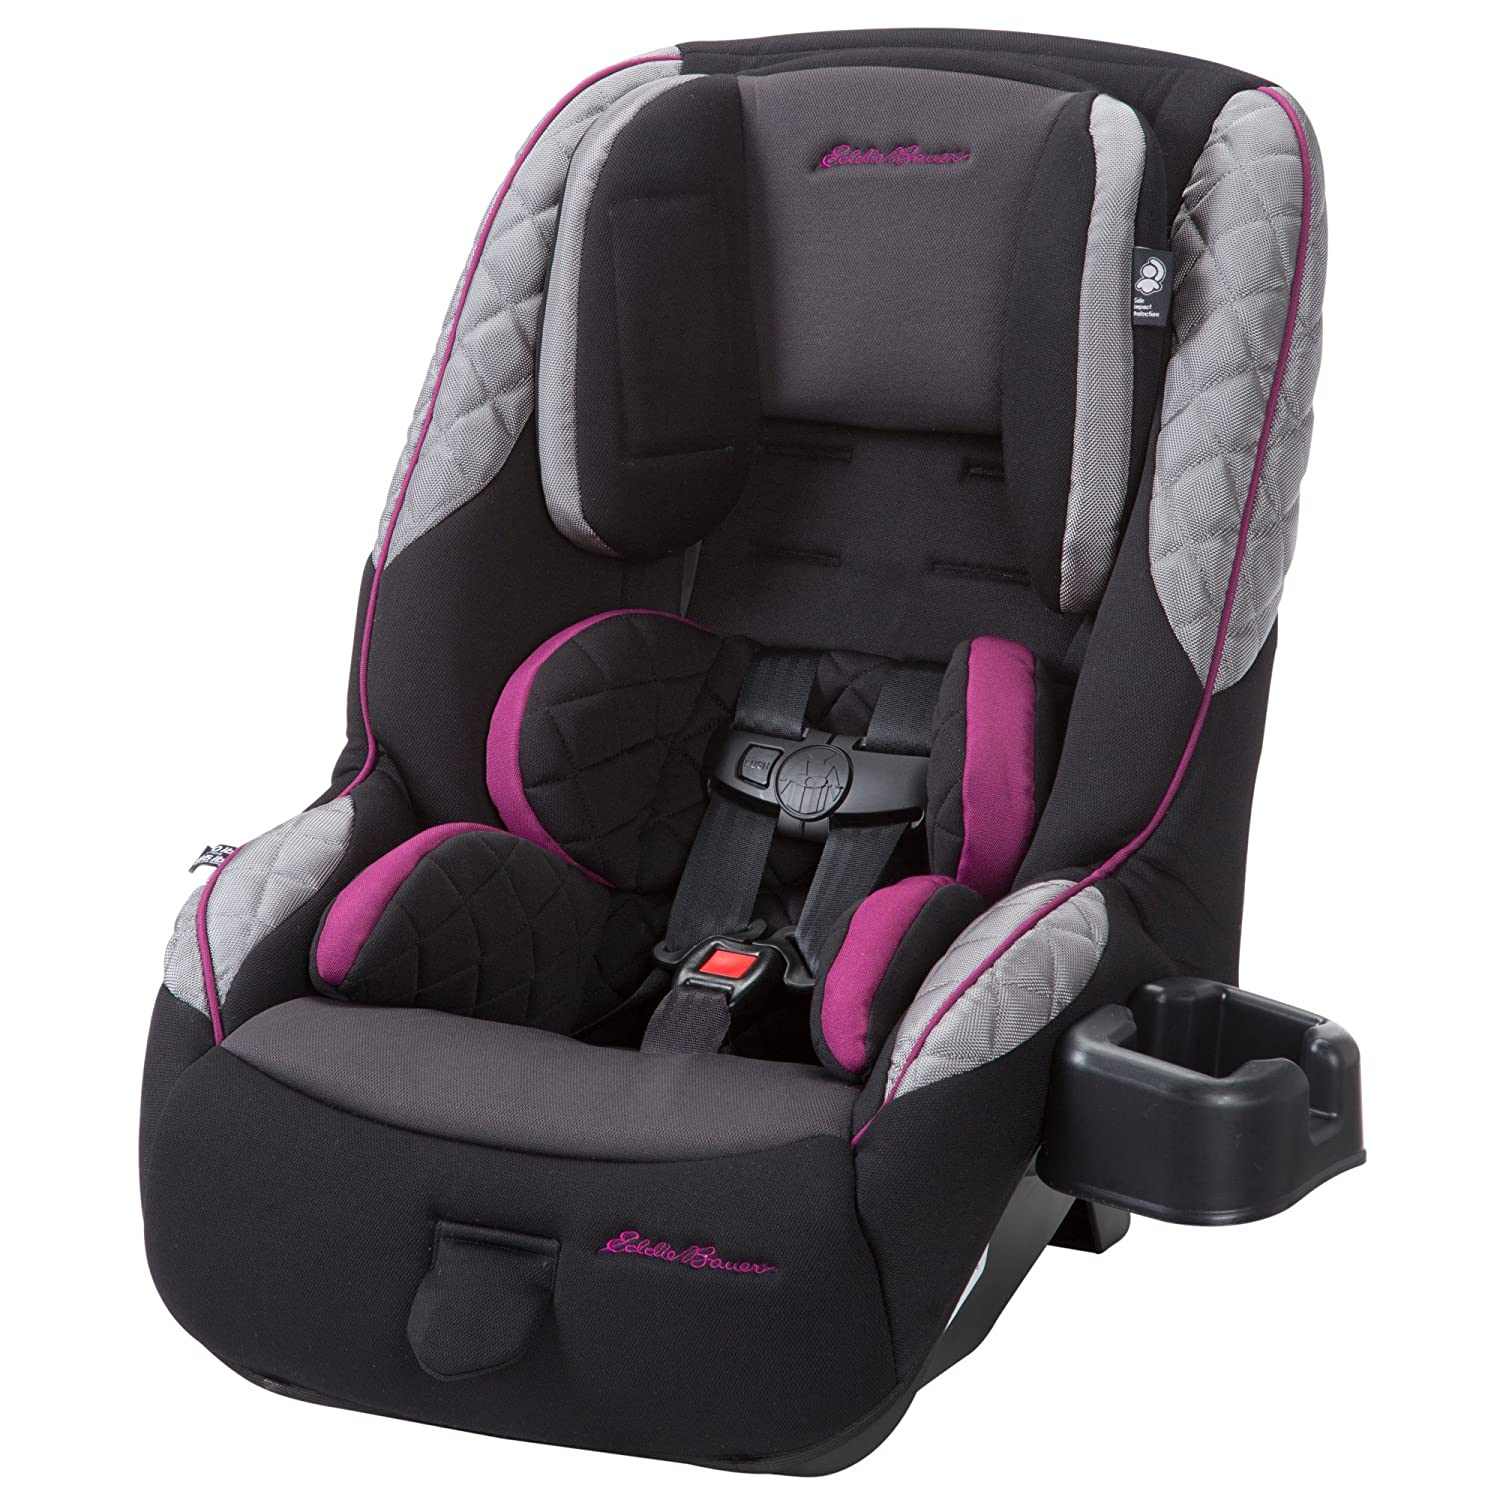 Eddie Bauer XRS 65 Convertible Car Seat, Viewpoint CC070CTG